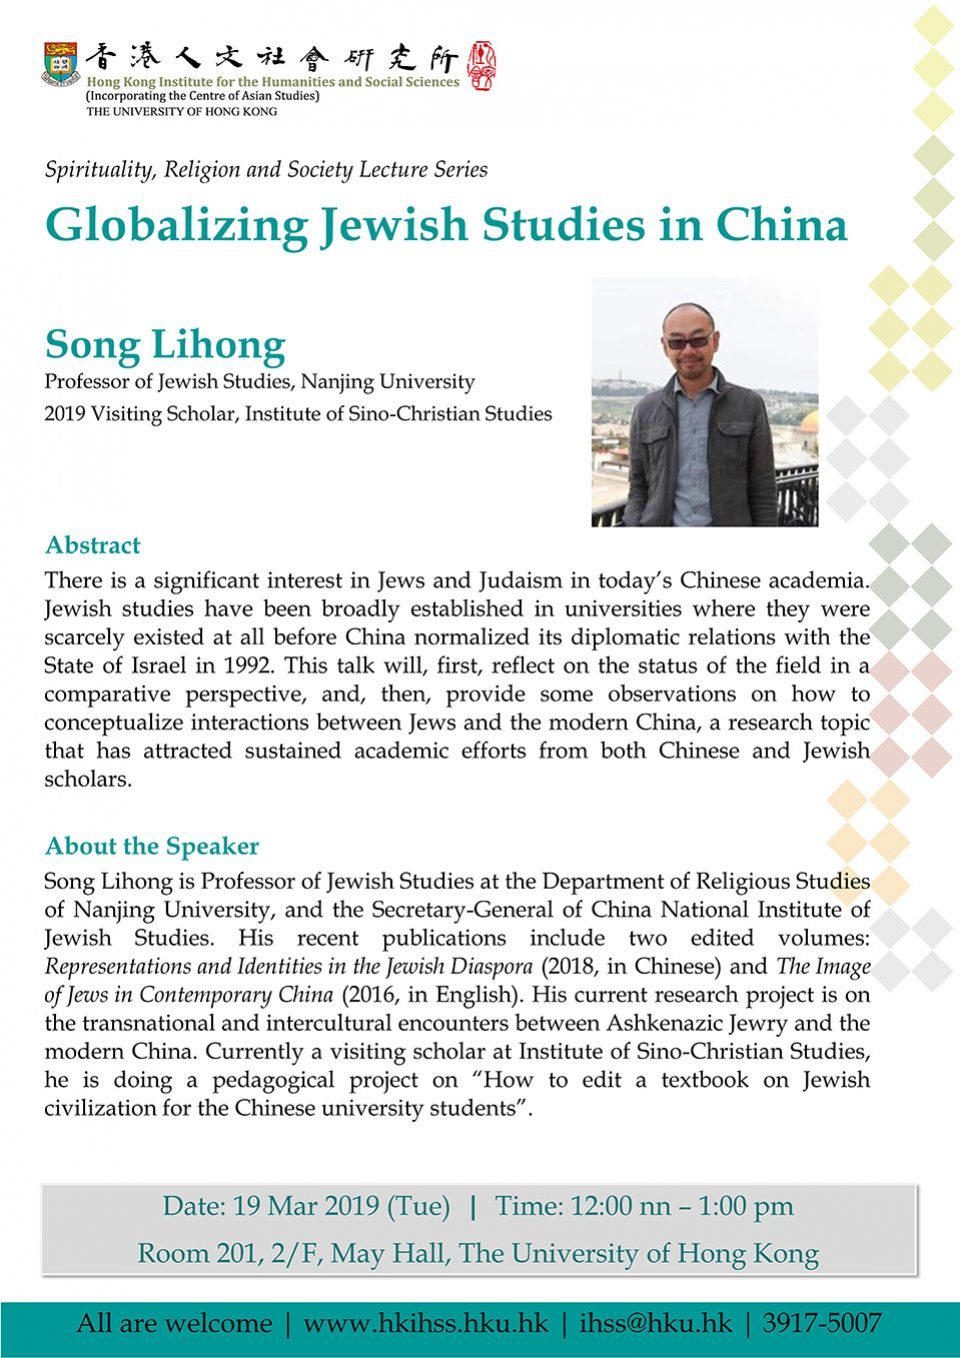 Spirituality, Religion and Society Lecture Series: Globalizing Jewish Studies in China by Song Lihong (March 19, 2019)